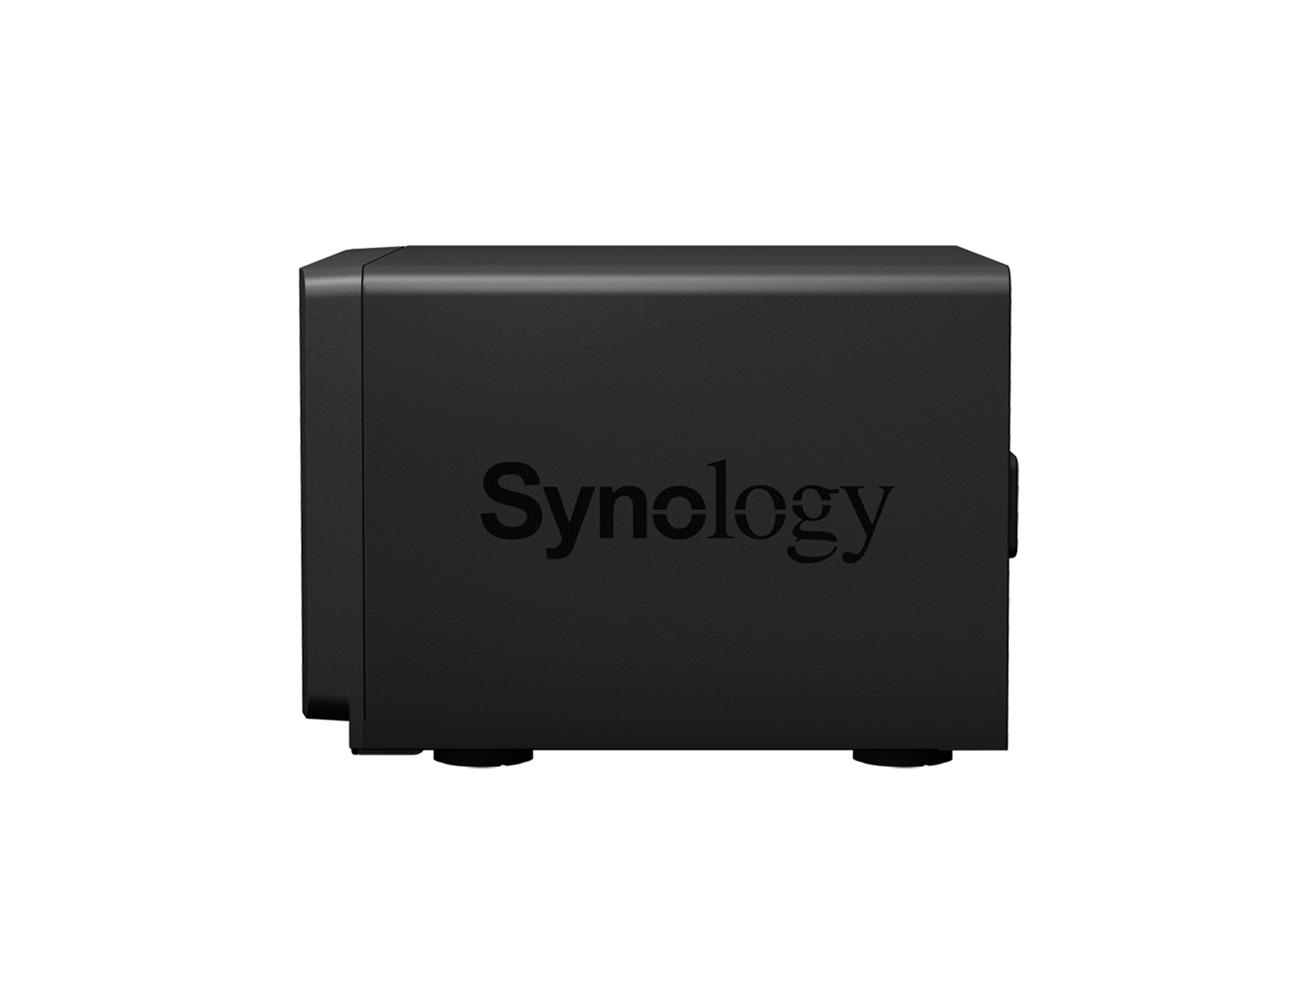 Synology DiskStation DS1517+ High Performance NAS Optimized for